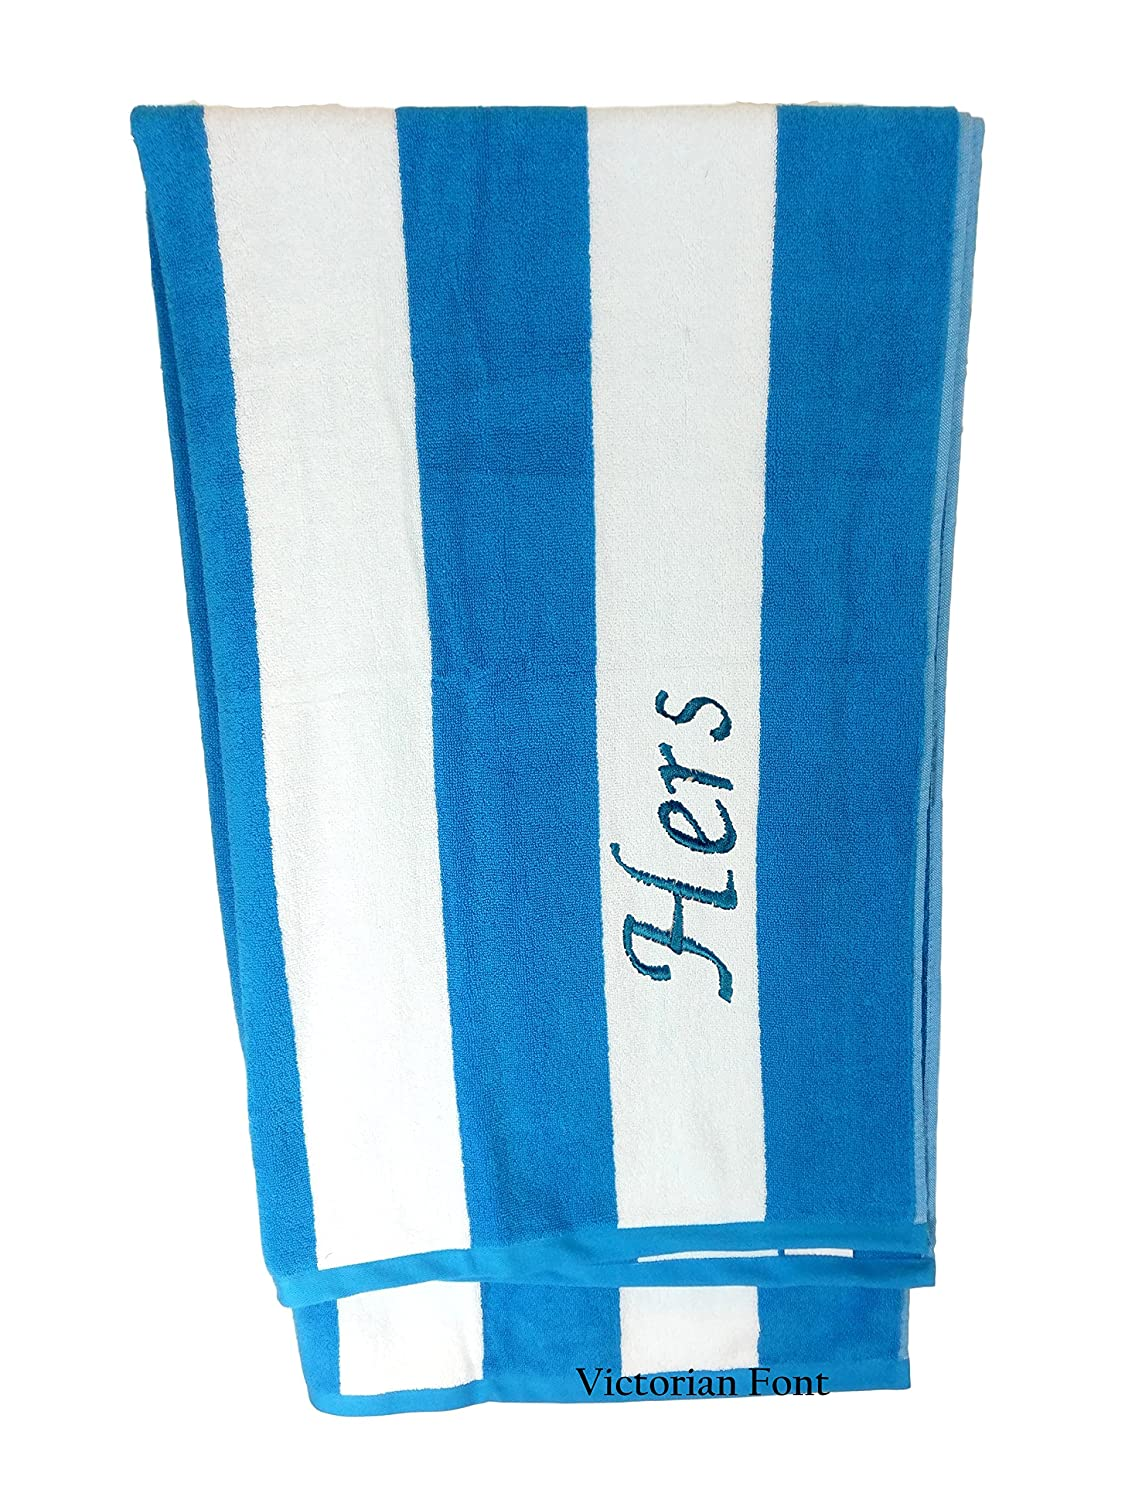 byLora Premium Personalized Striped Cabana Beach Towel 35' x 60' - Monogrammed Pool Towels - Custom Embroidered Towels - Thick 500 GSM Terry - Aqua, White